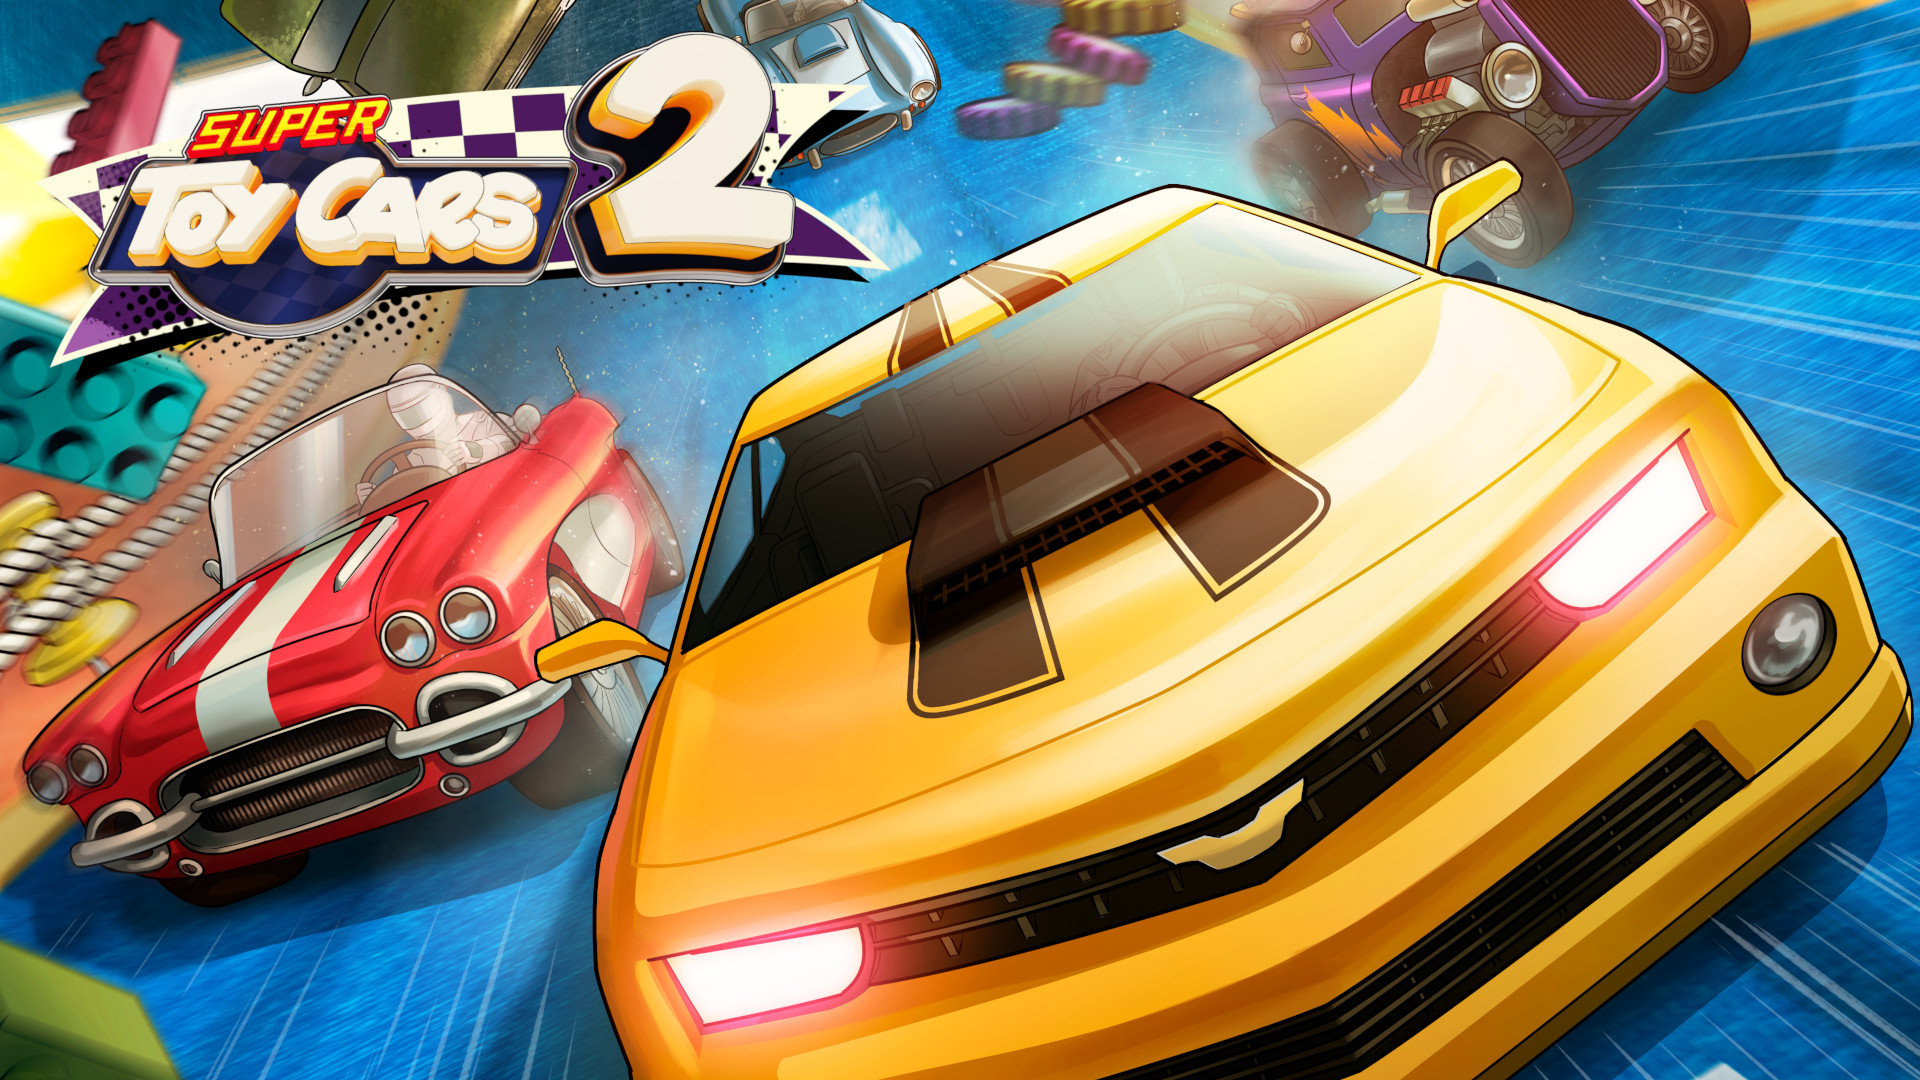 Super Toy Cars 2 Nintendo Switch Eshop Download